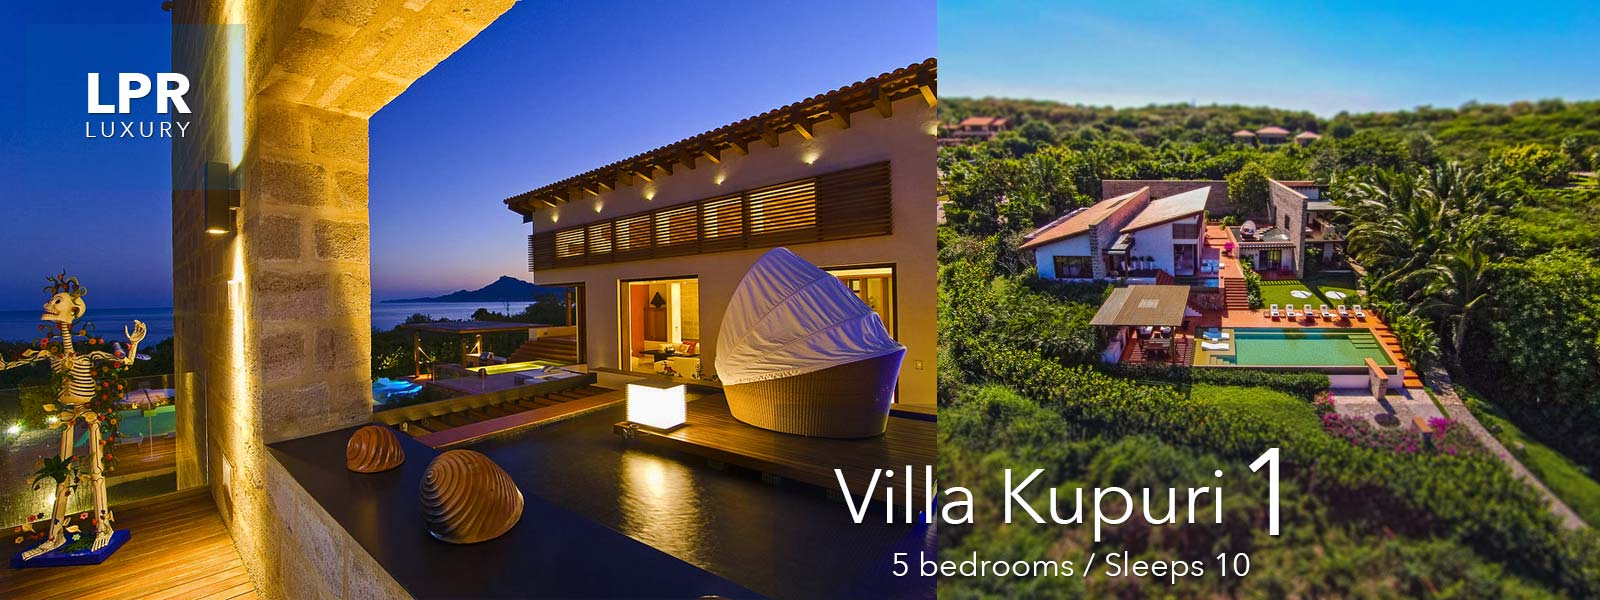 Villa Kupuri 1 - Punta Mita Resort, Mexico - Luxury vacation rentals and real estate